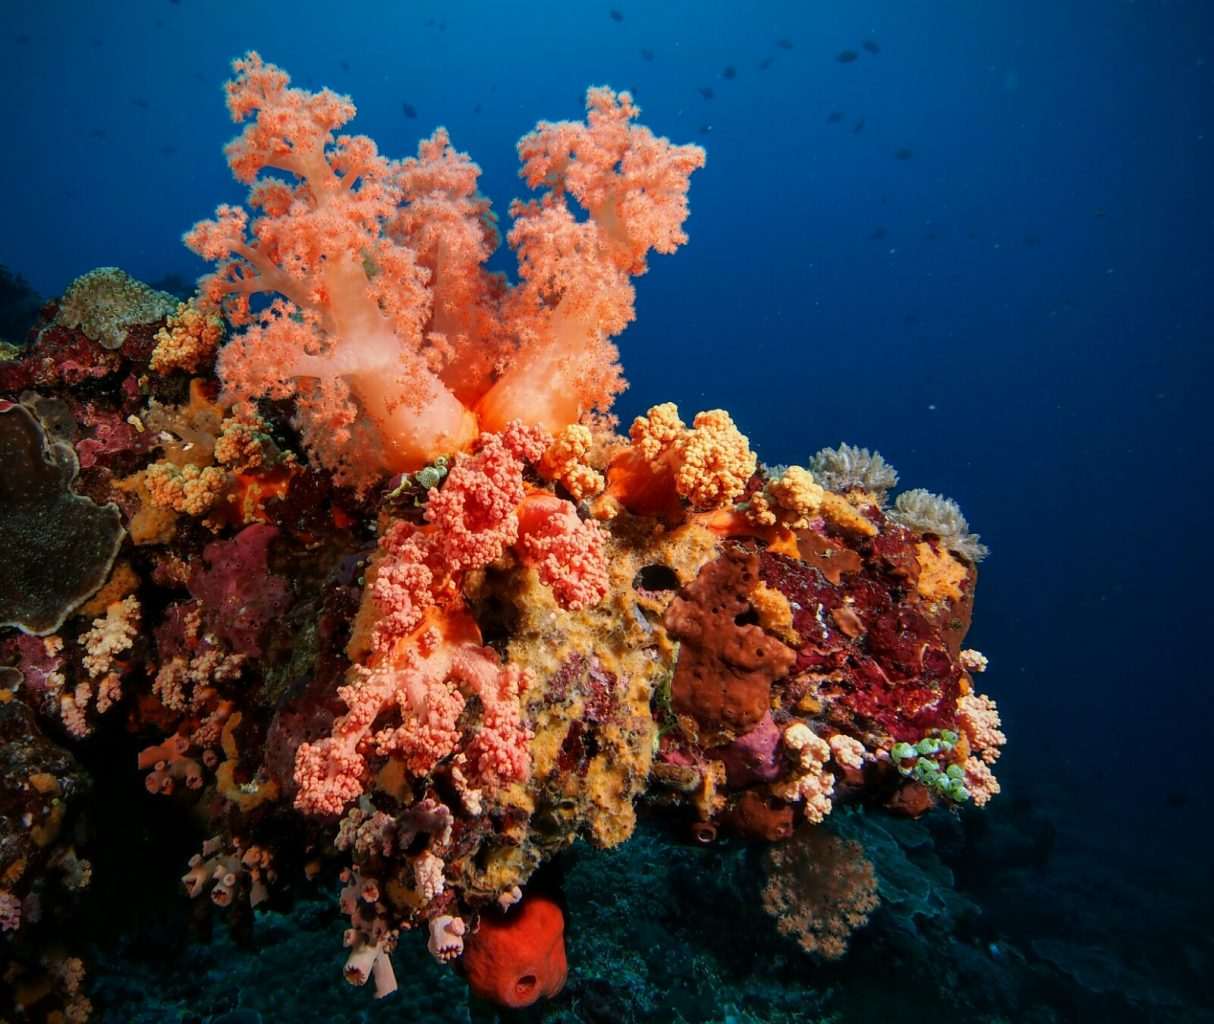 Underwater Photography: Coral Reef